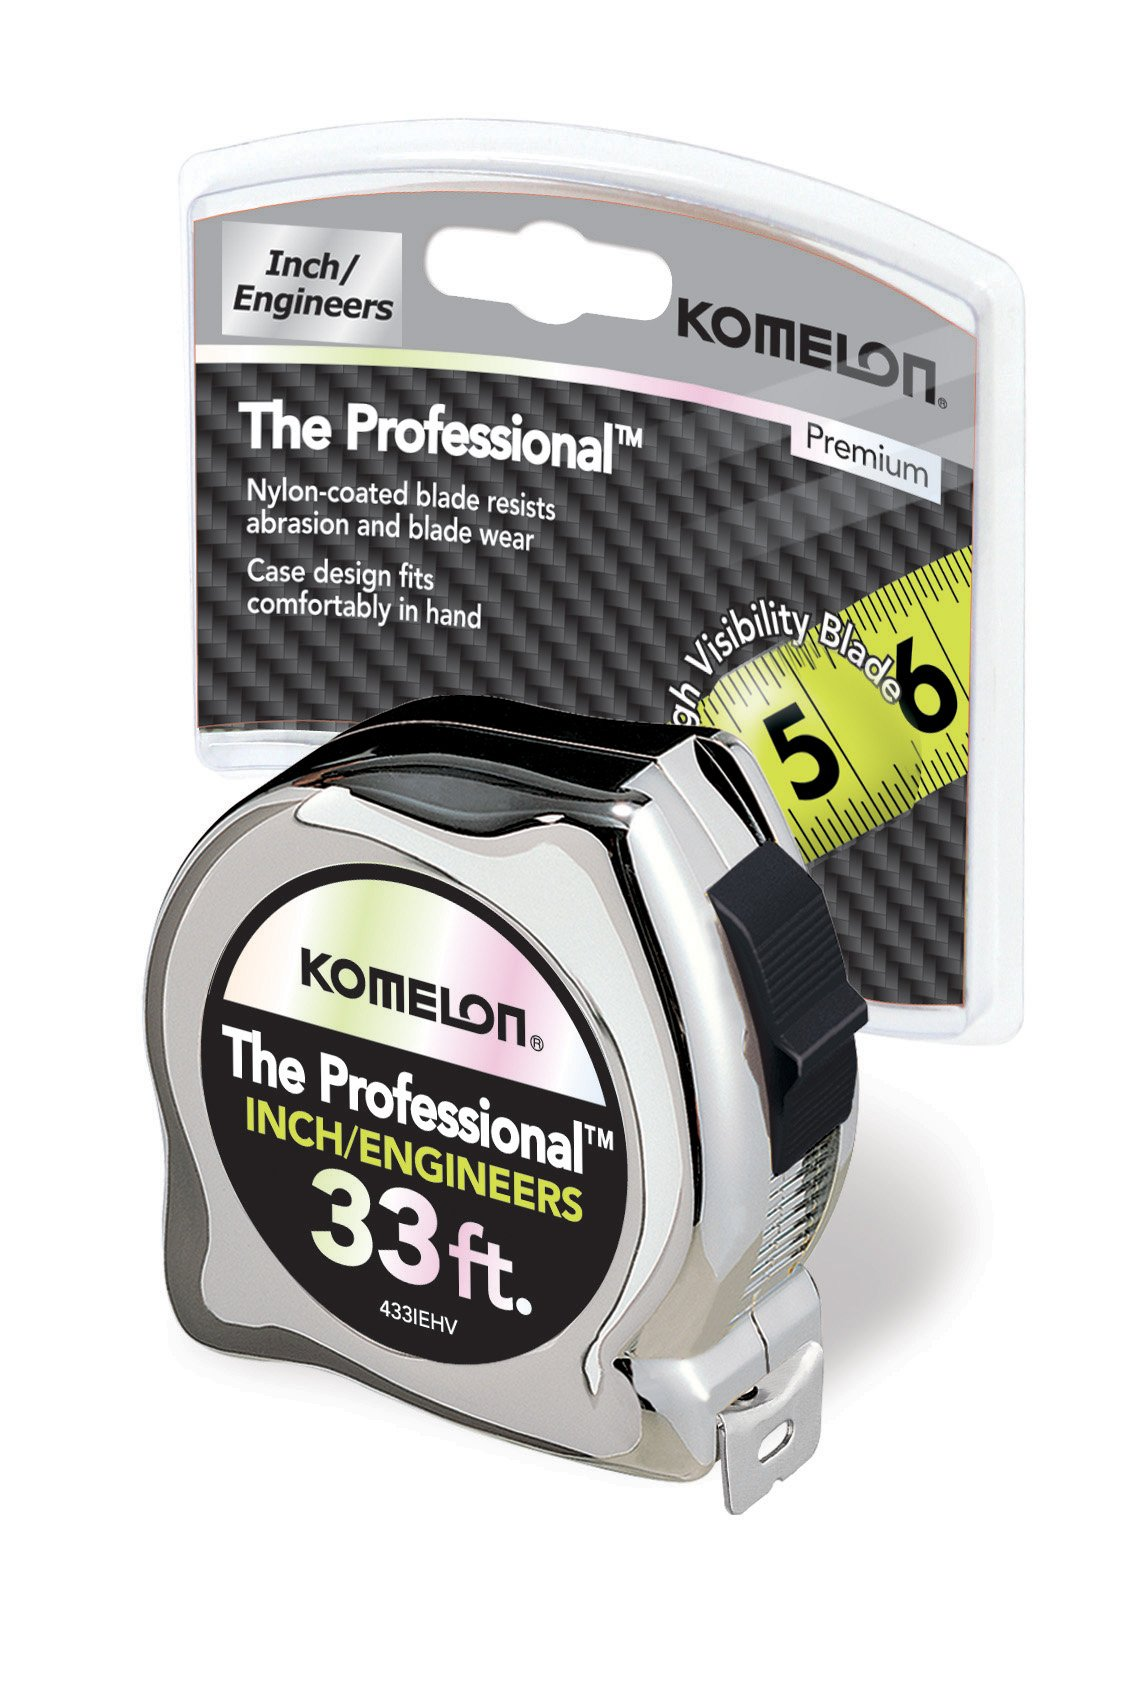 Komelon 433IEHV High-Visibility Professional Tape Measure both Inch and Engineer Scale Printed 33-feet by 1-Inch, Chrome by Komelon